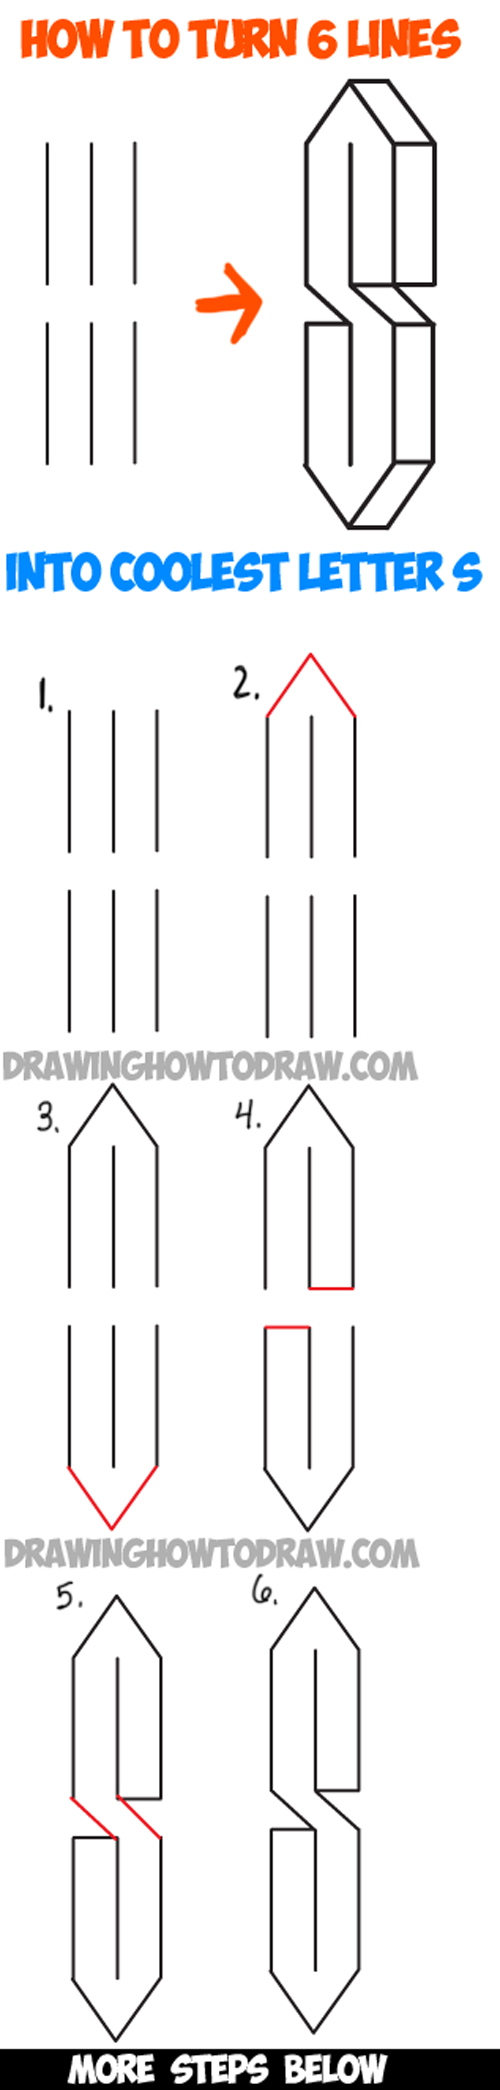 Line Drawing Step By Step : Drawing lessons for kids archives how to draw step by